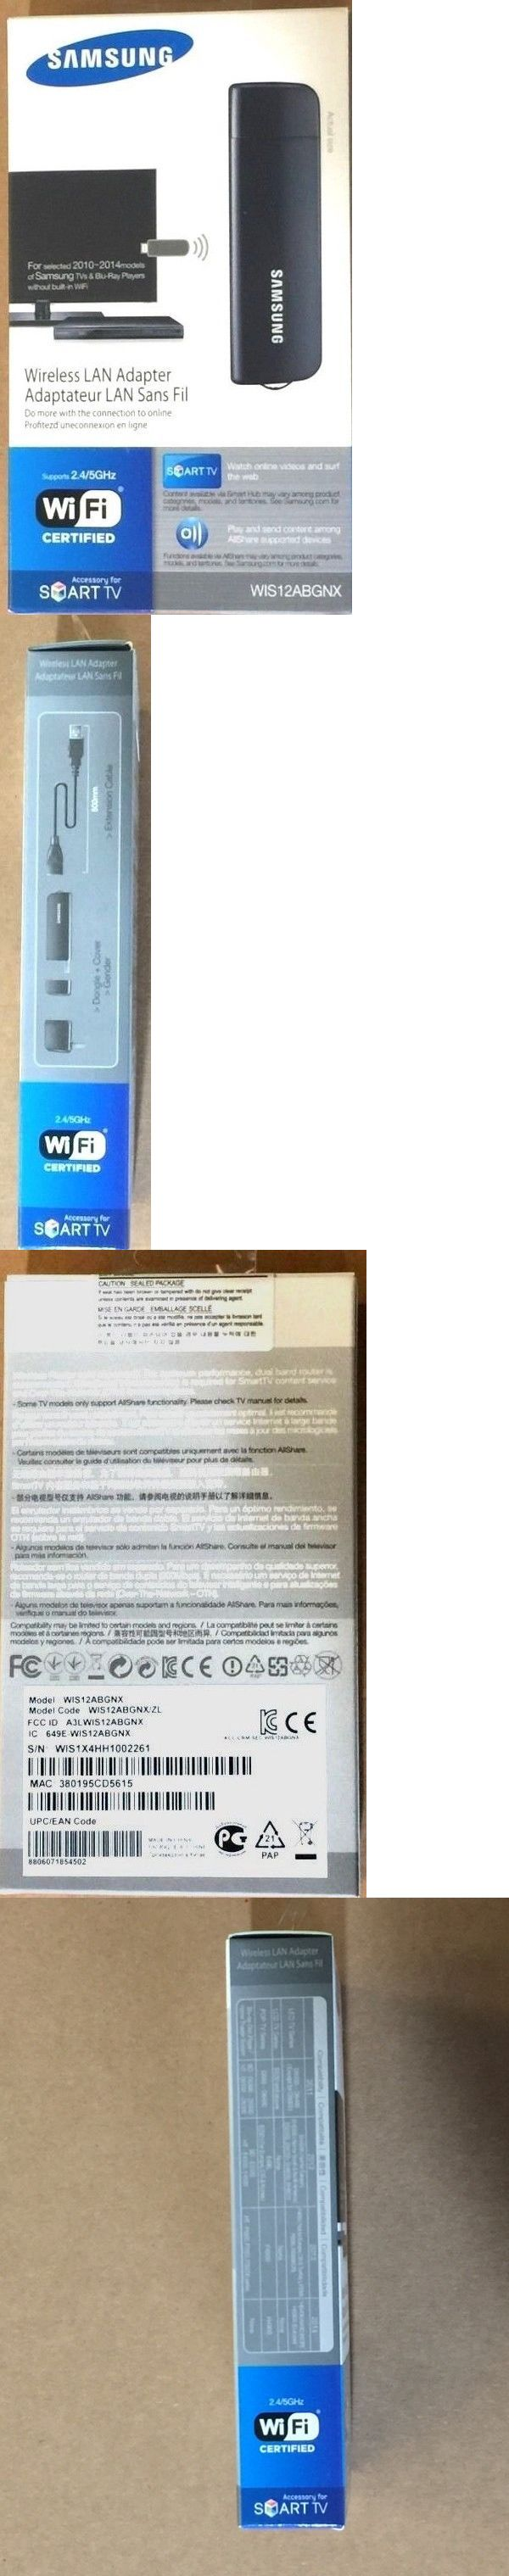 Audio Video Transmitters: Samsung Wis12abgnx Wireless Lan Adapter For Samung Tvs 2010-2014 Select Models BUY IT NOW ONLY: $38.0